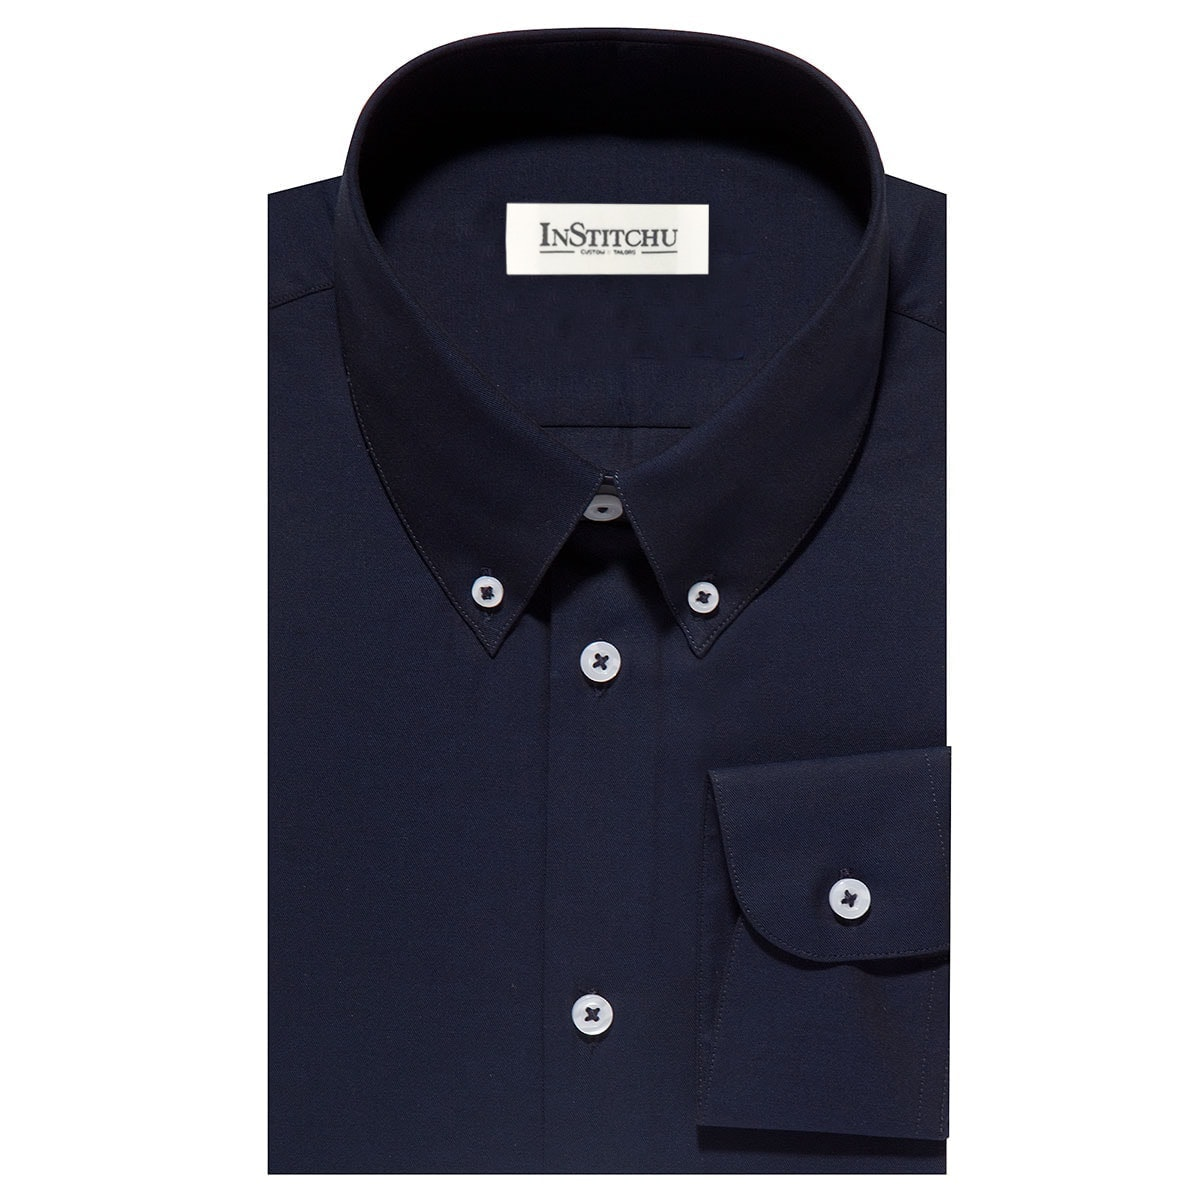 InStitchu Collection The Juno Navy Shirt